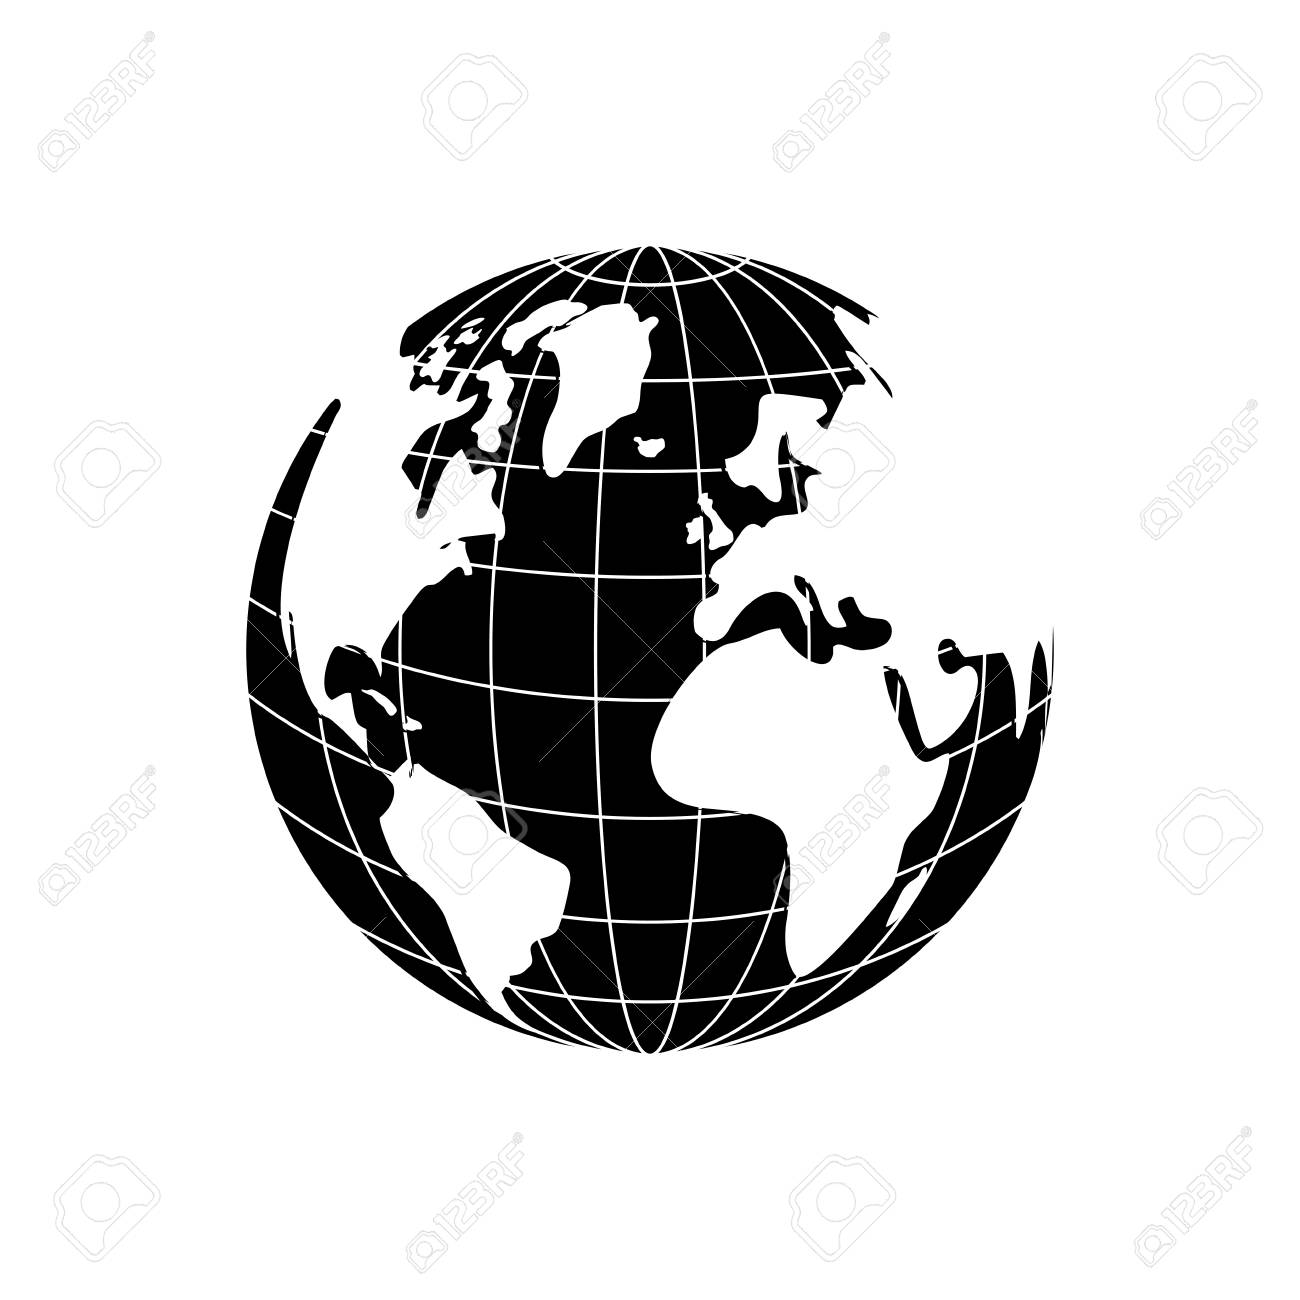 Isolated earth world icon vector illustration graphic design royalty isolated earth world icon vector illustration graphic design stock vector 69949570 publicscrutiny Choice Image